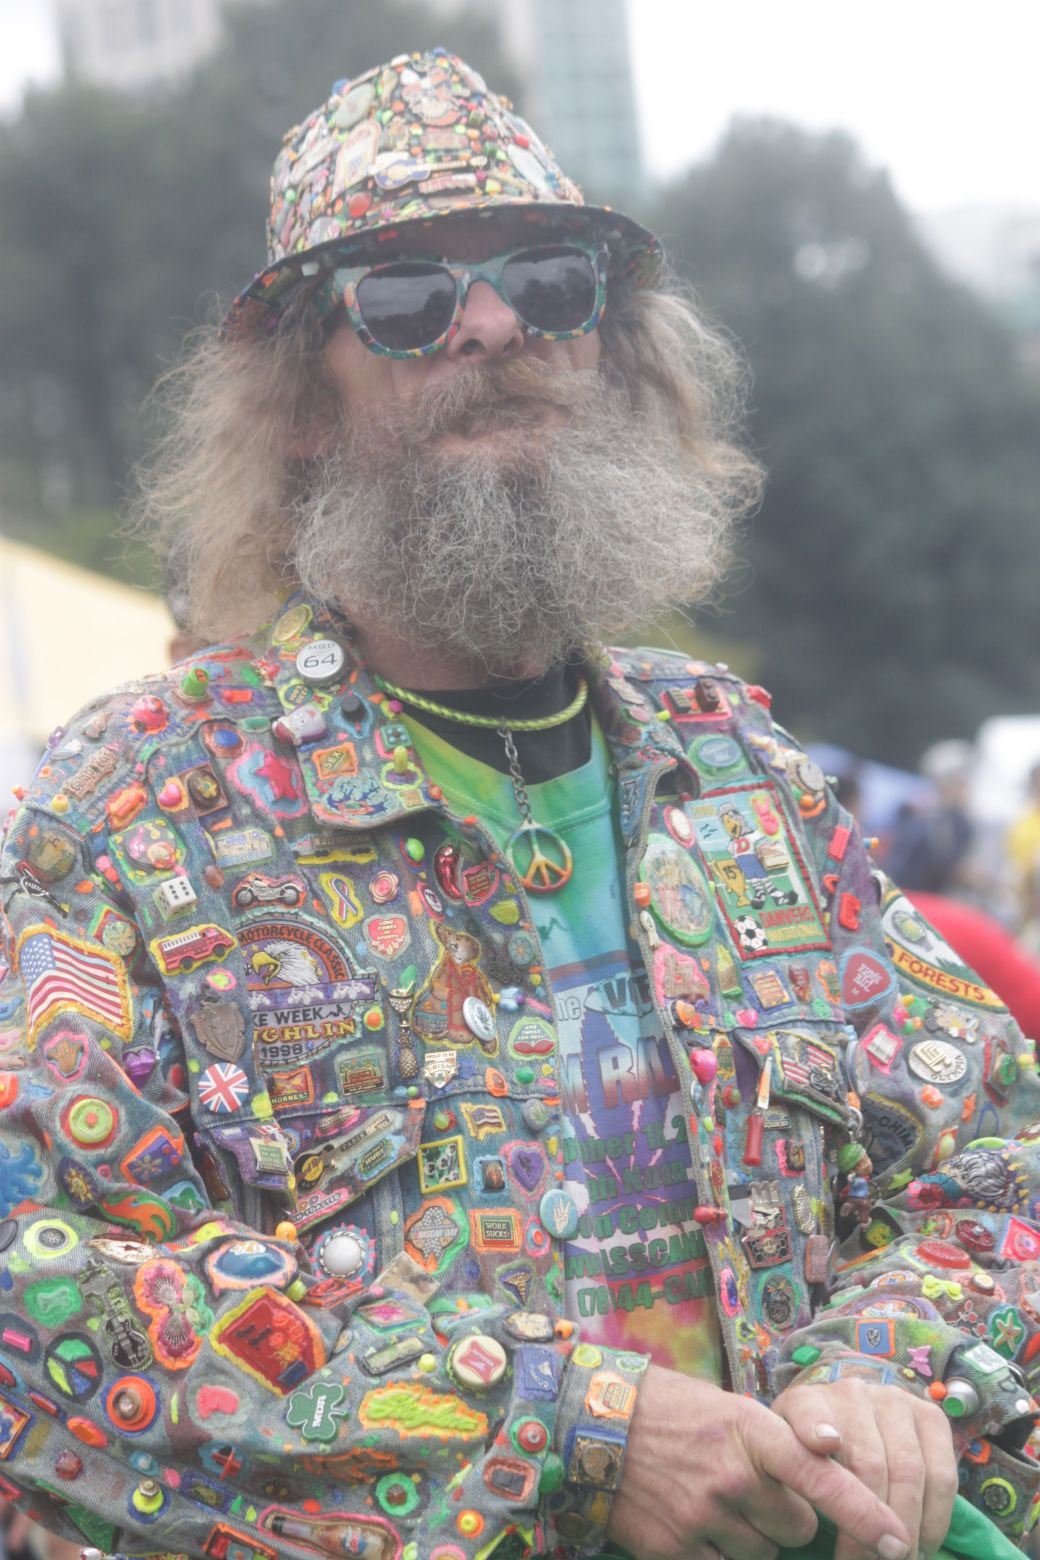 boston hemp fest 2013 man with patches suit hands folded